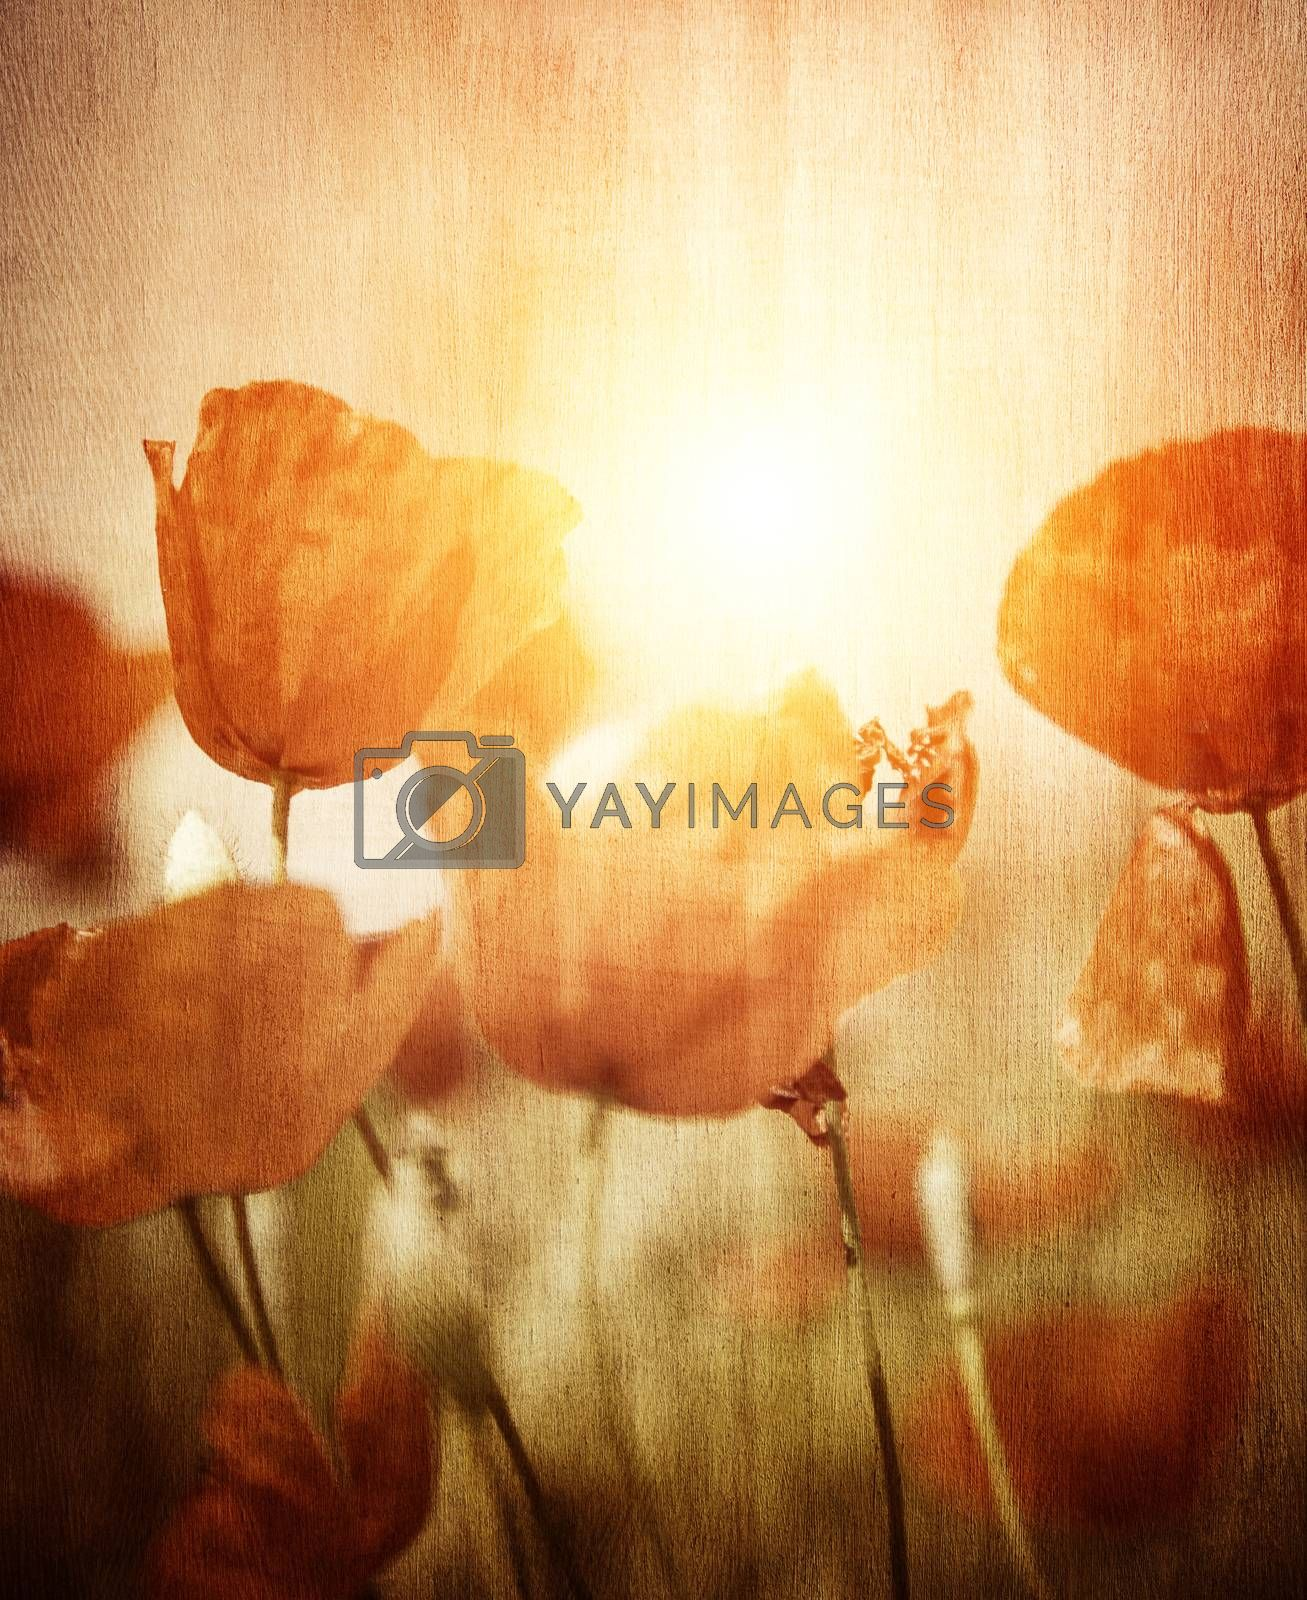 Royalty free image of Poppies field by Anna_Omelchenko